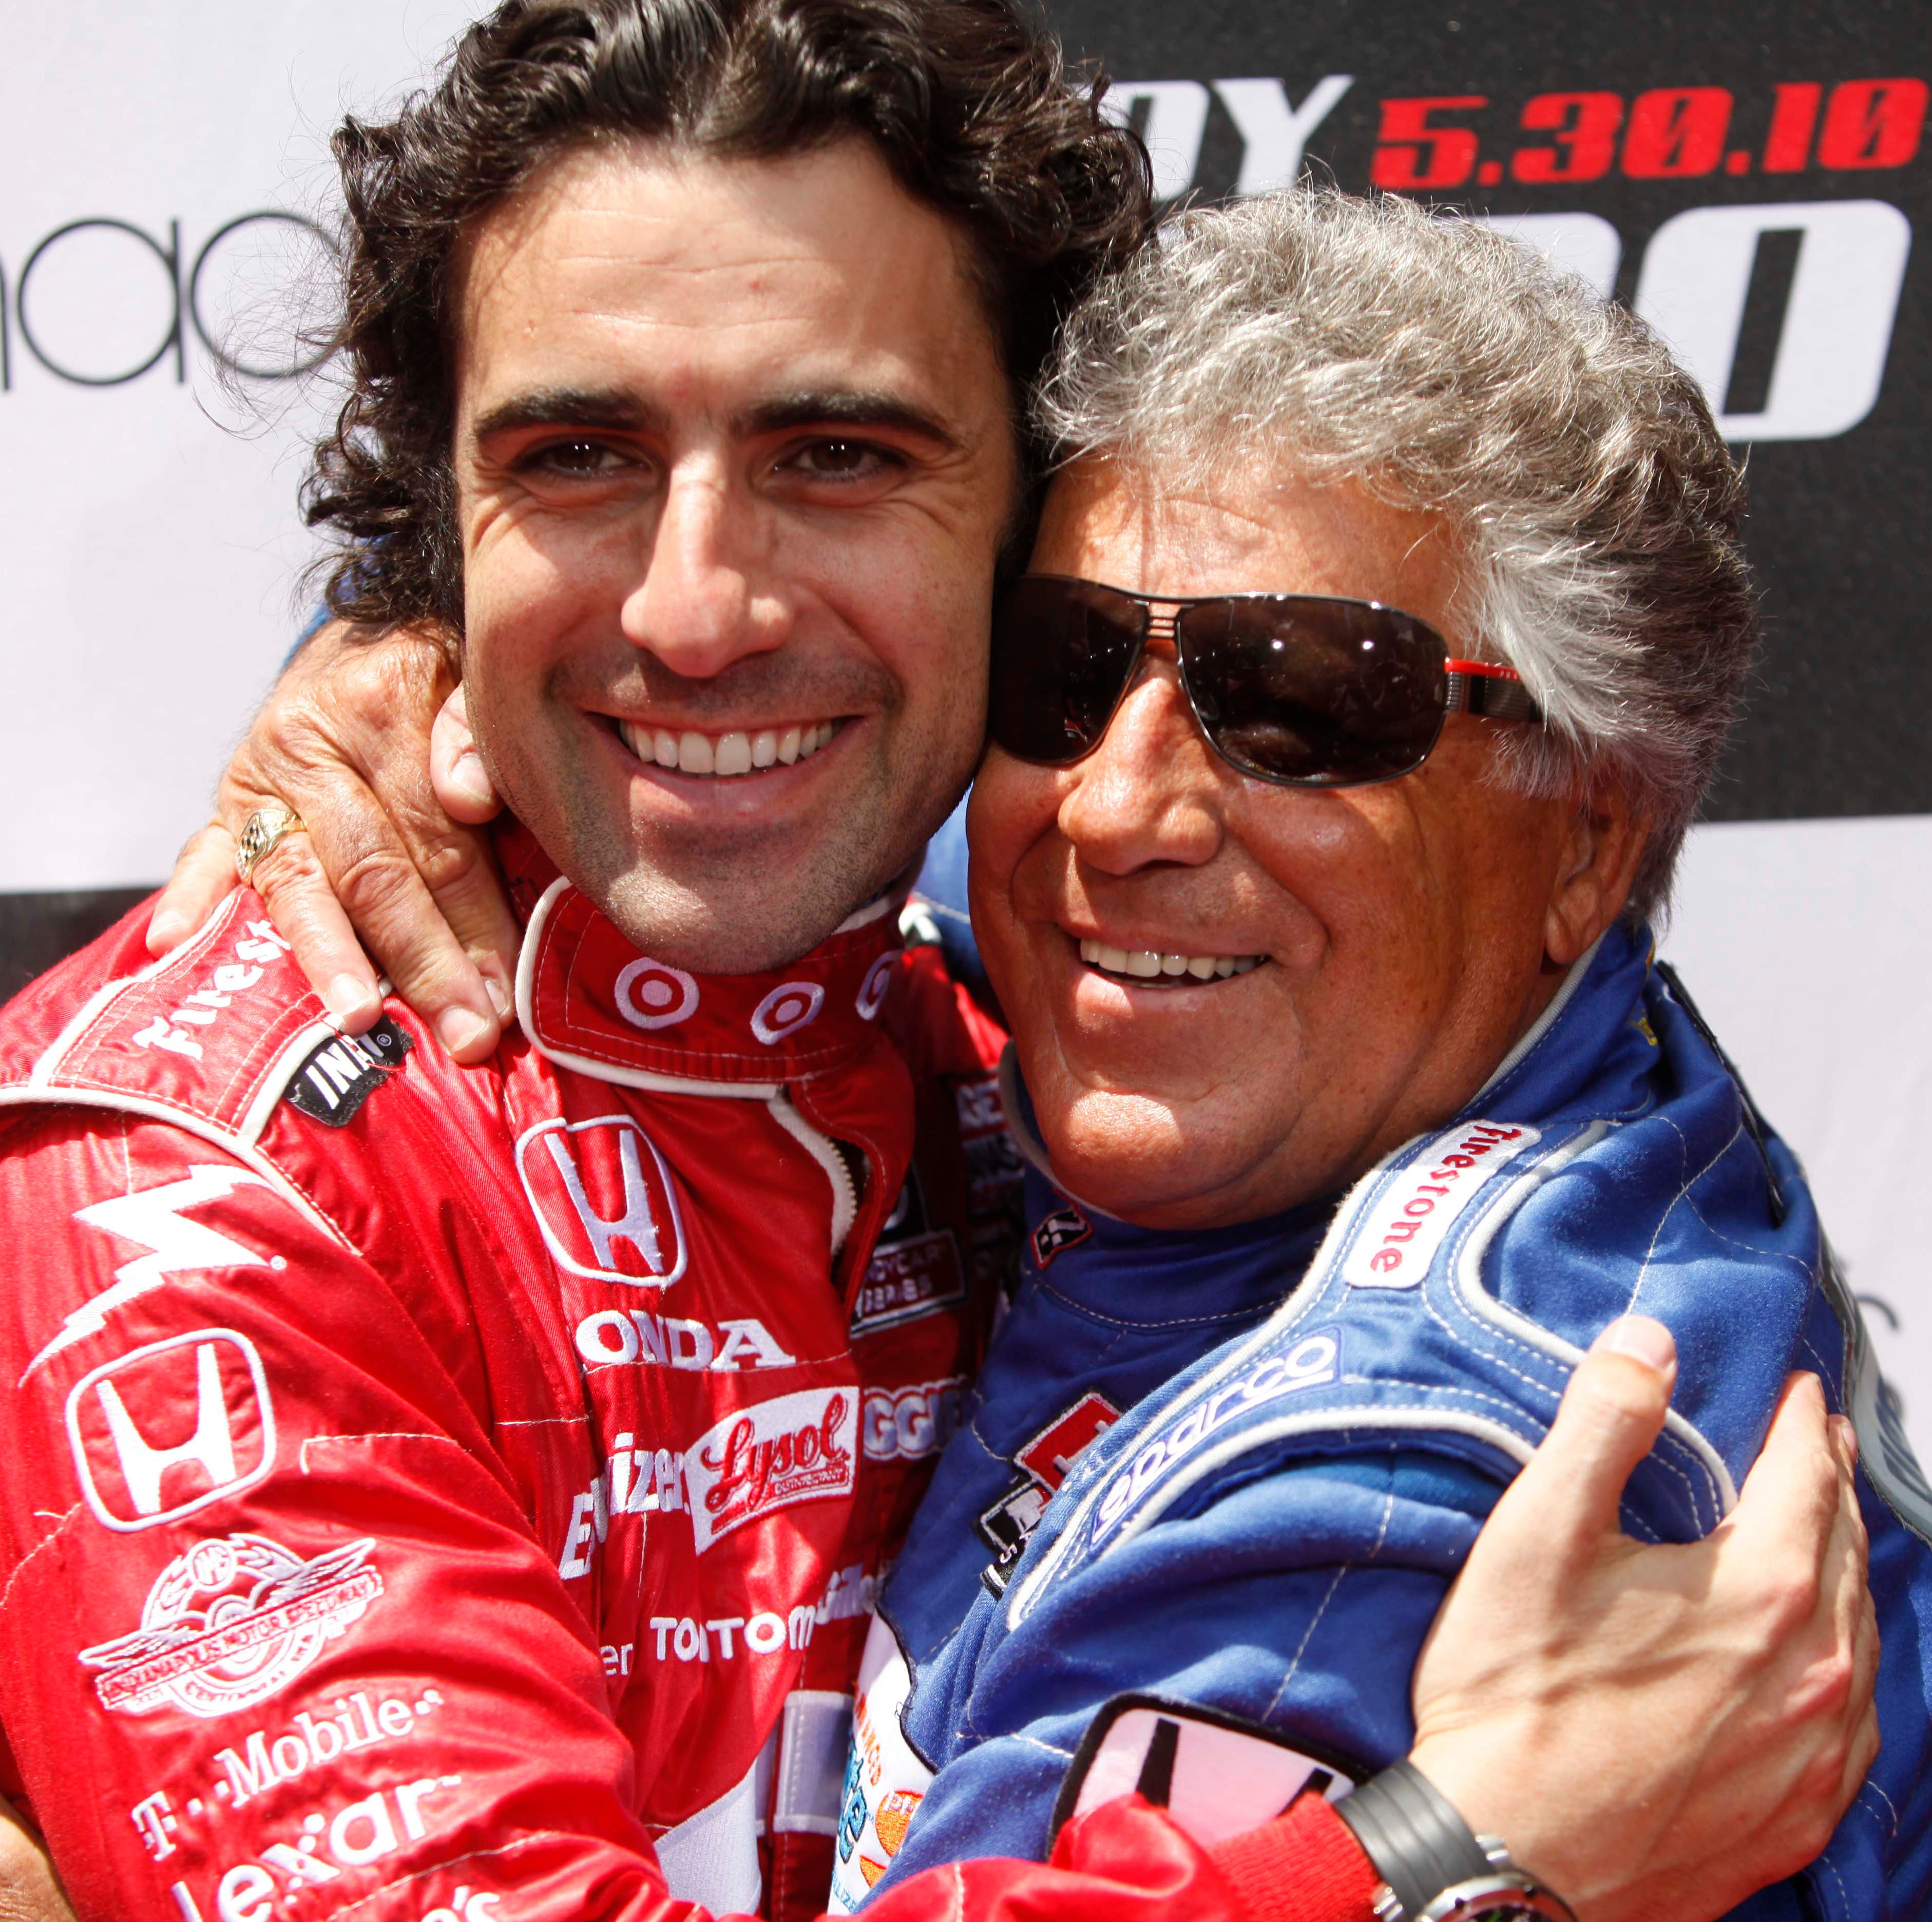 15 of the best Mario Andretti stories you've never heard